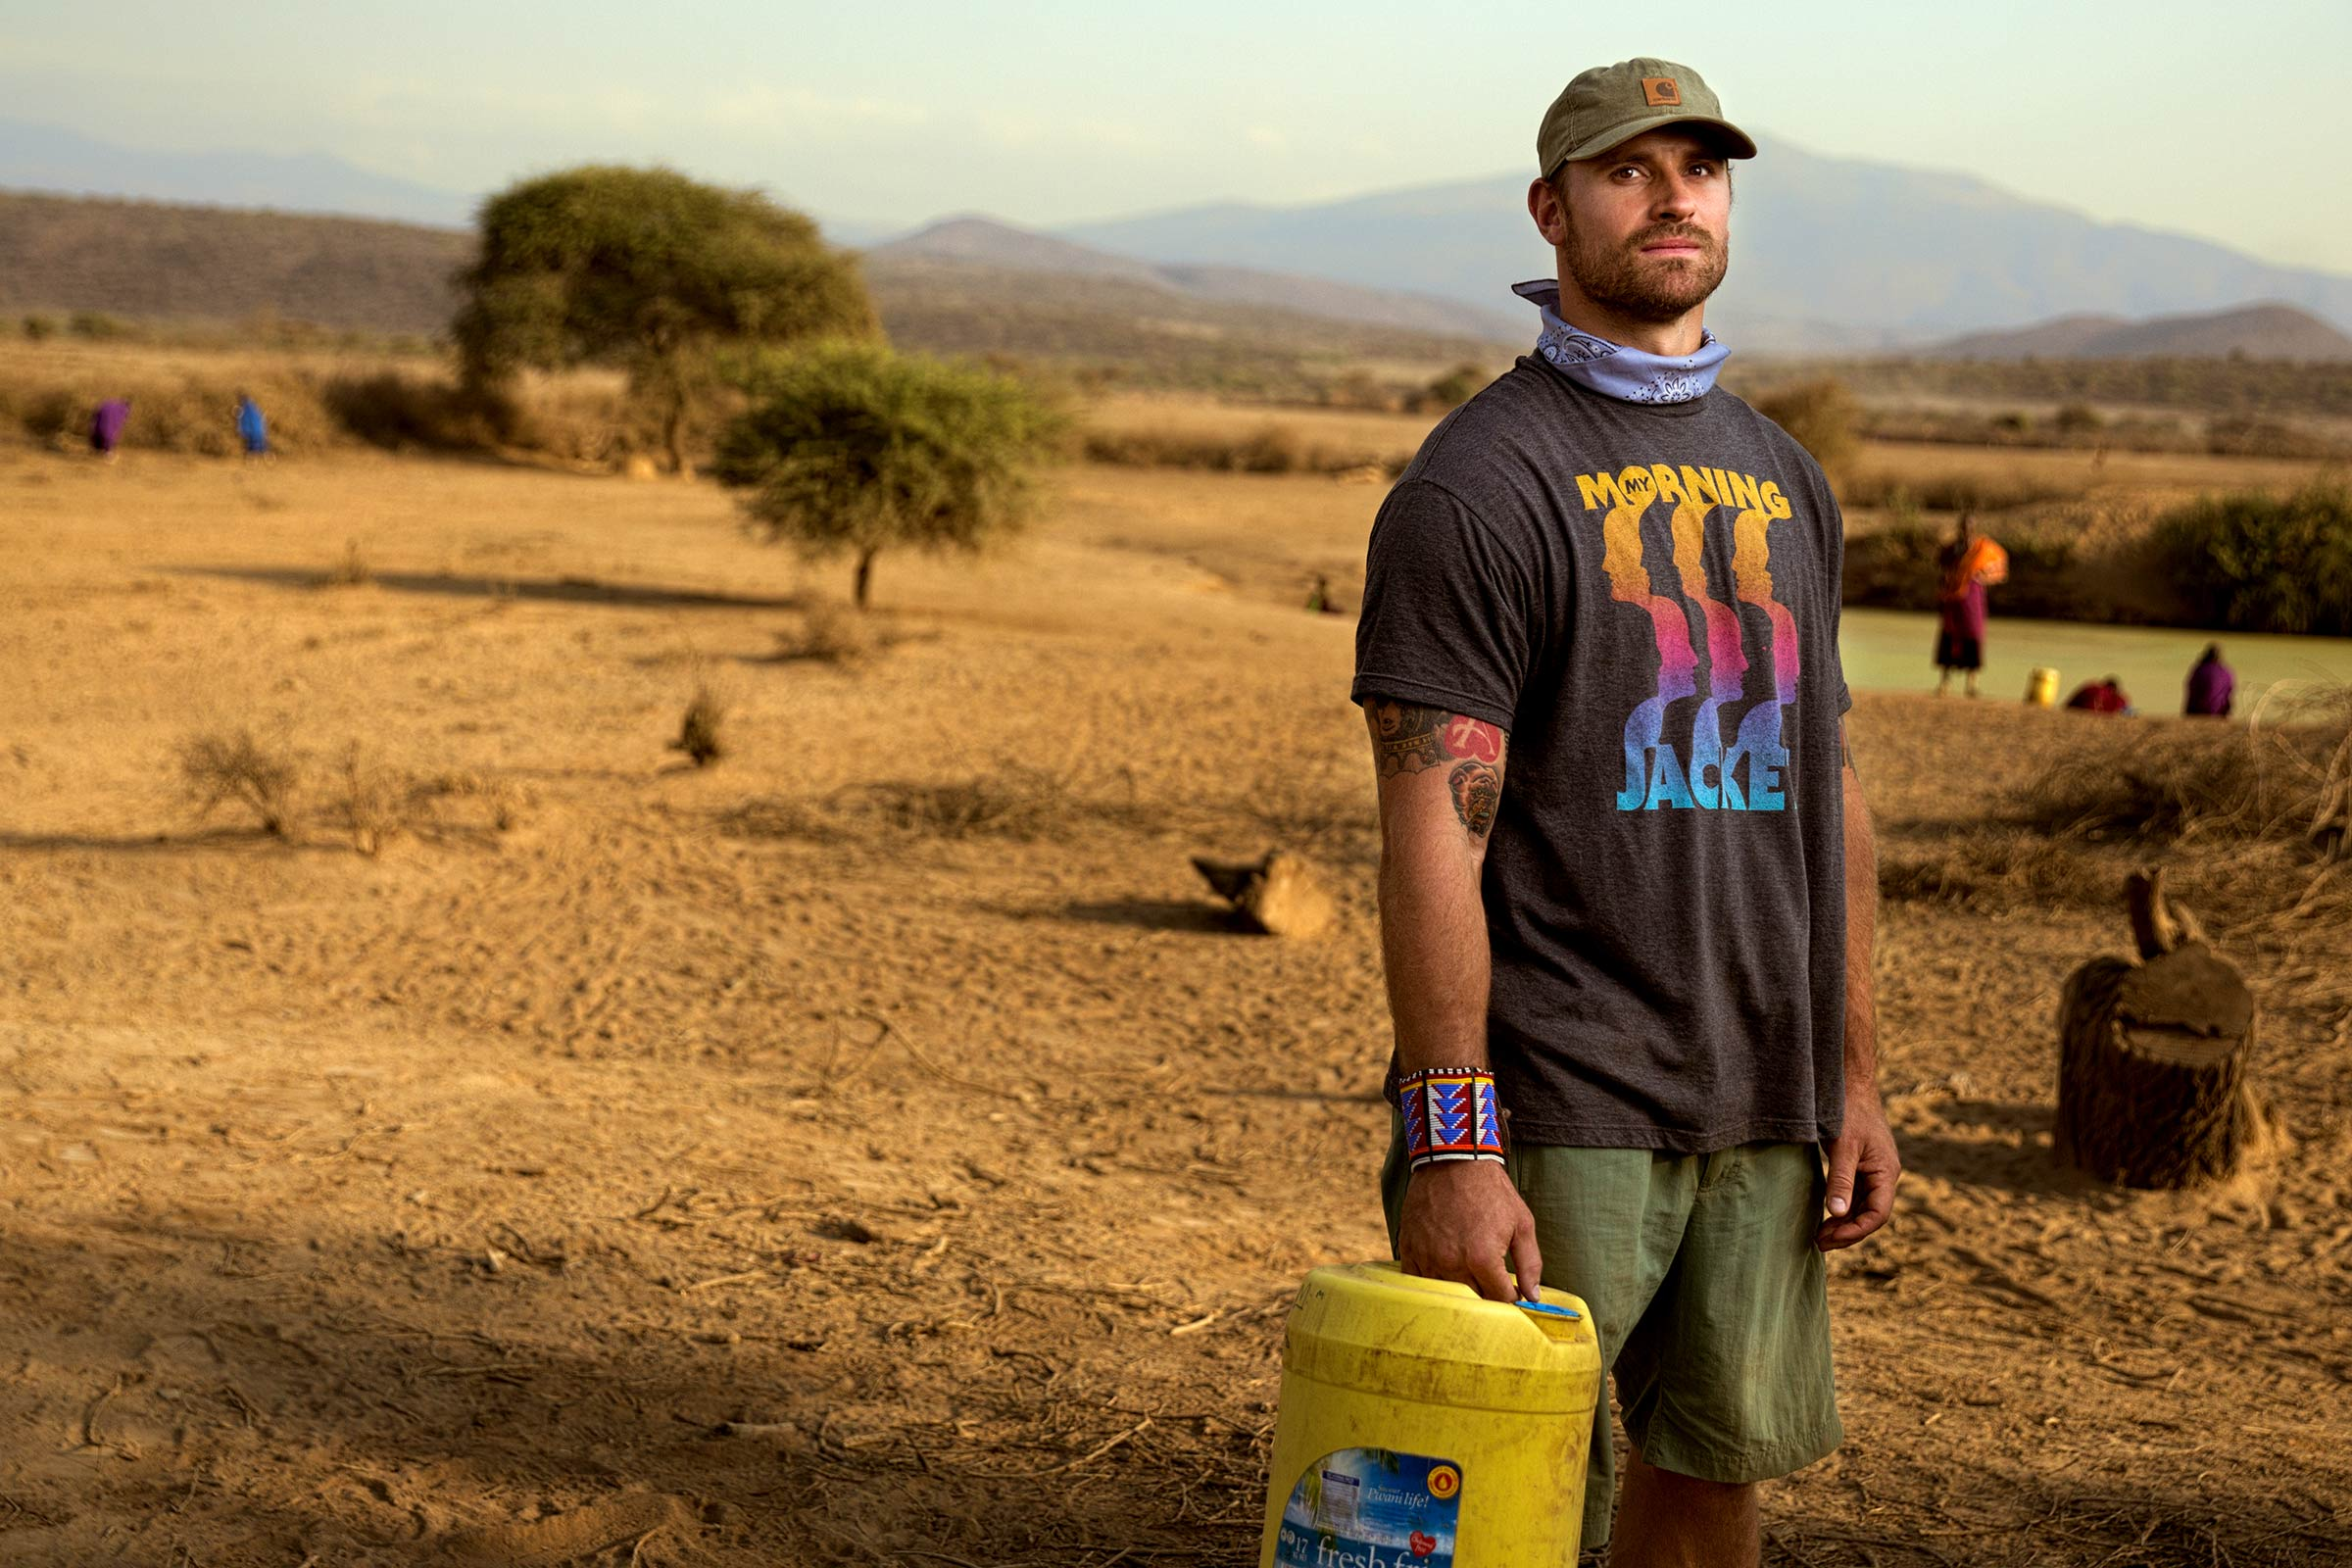 Chris Long at work in Tanzania with the Waterboys Initiative he founded, which installs deep borehole wells to help provide clean drinking water in East Africa.